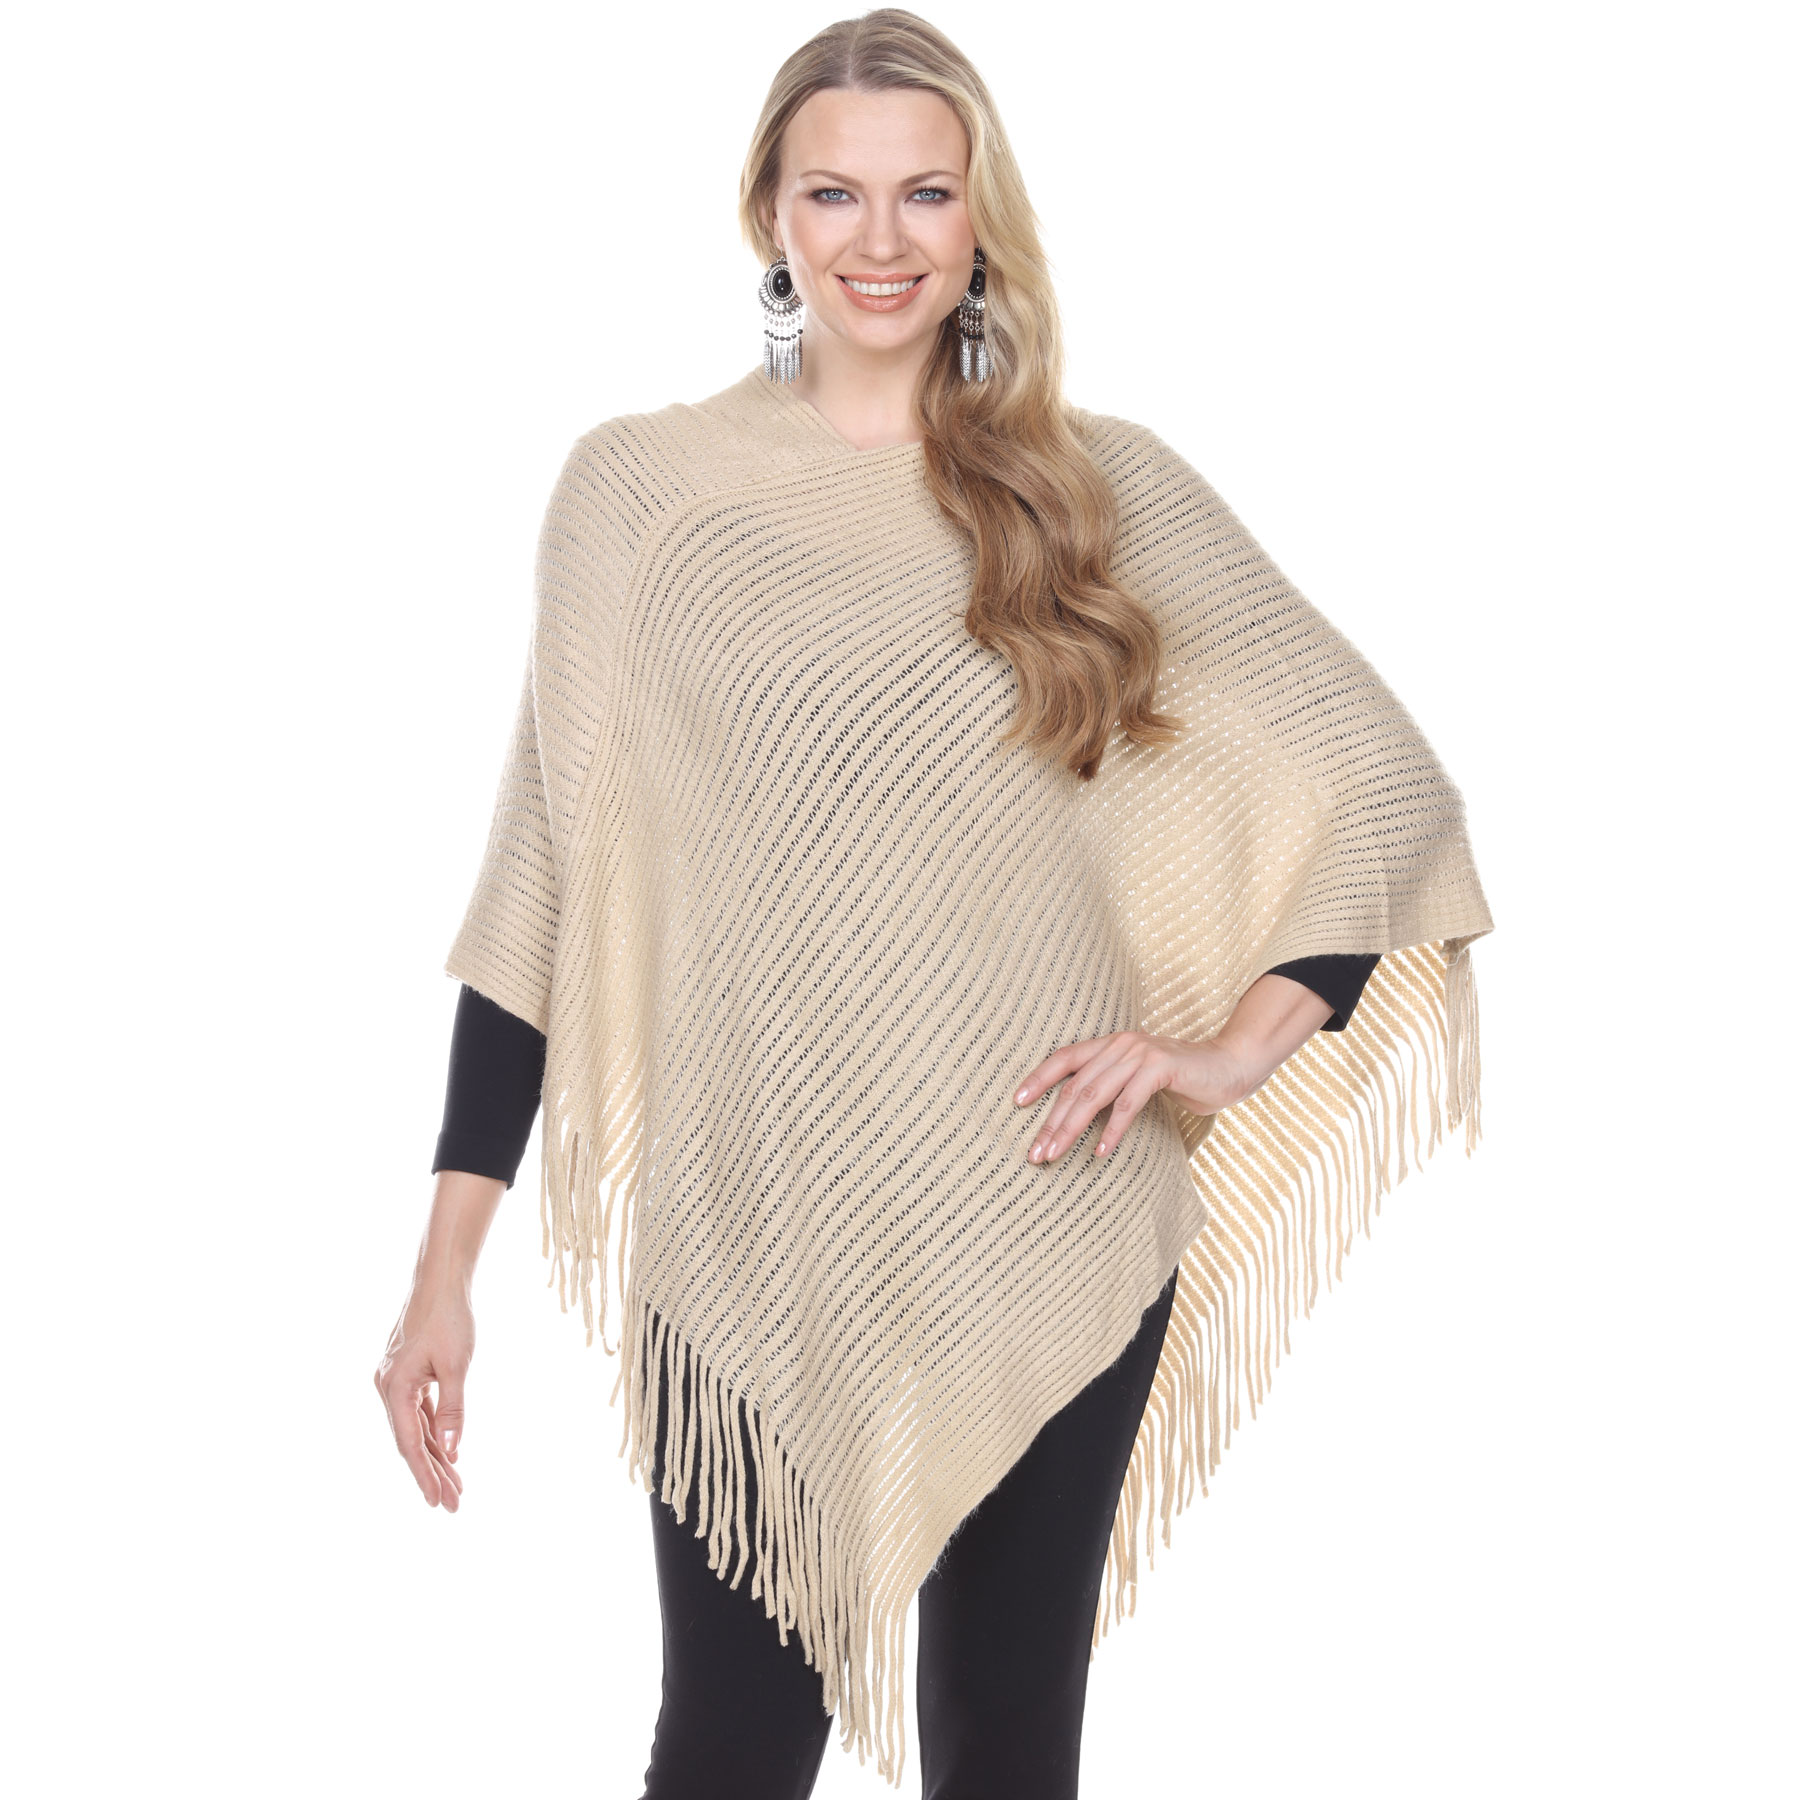 C Poncho - Cashmere Feel - Knit Ribbed 4105*